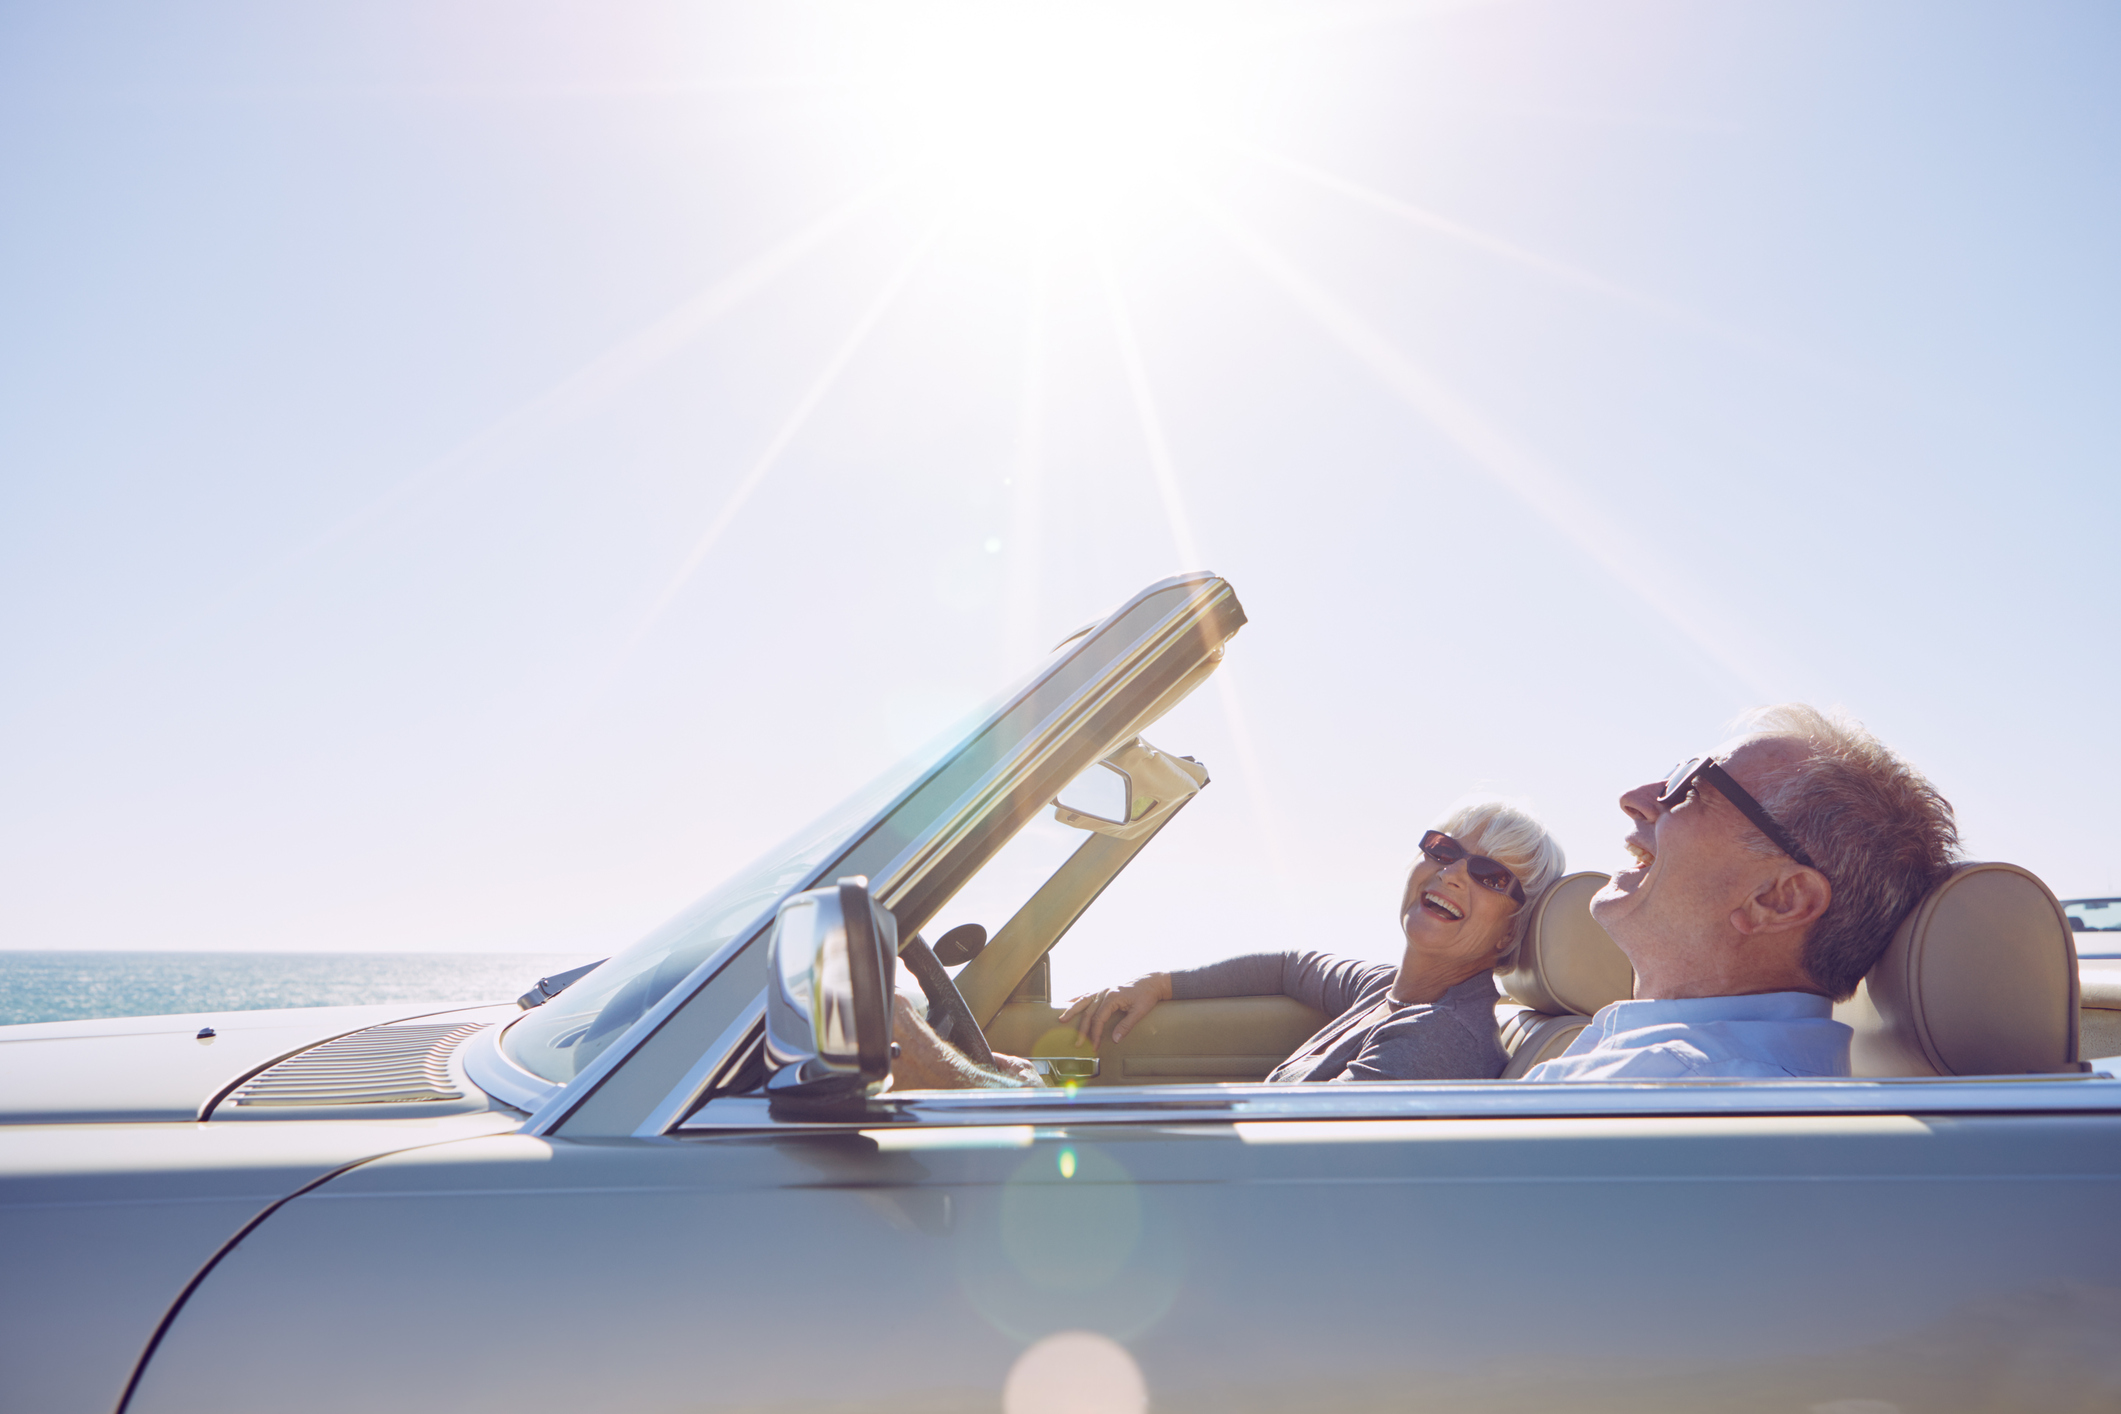 Shot of a happy couple off on a roadtrip togetherhttp://195.154.178.81/DATA/i_collage/pu/shoots/805931.jpg